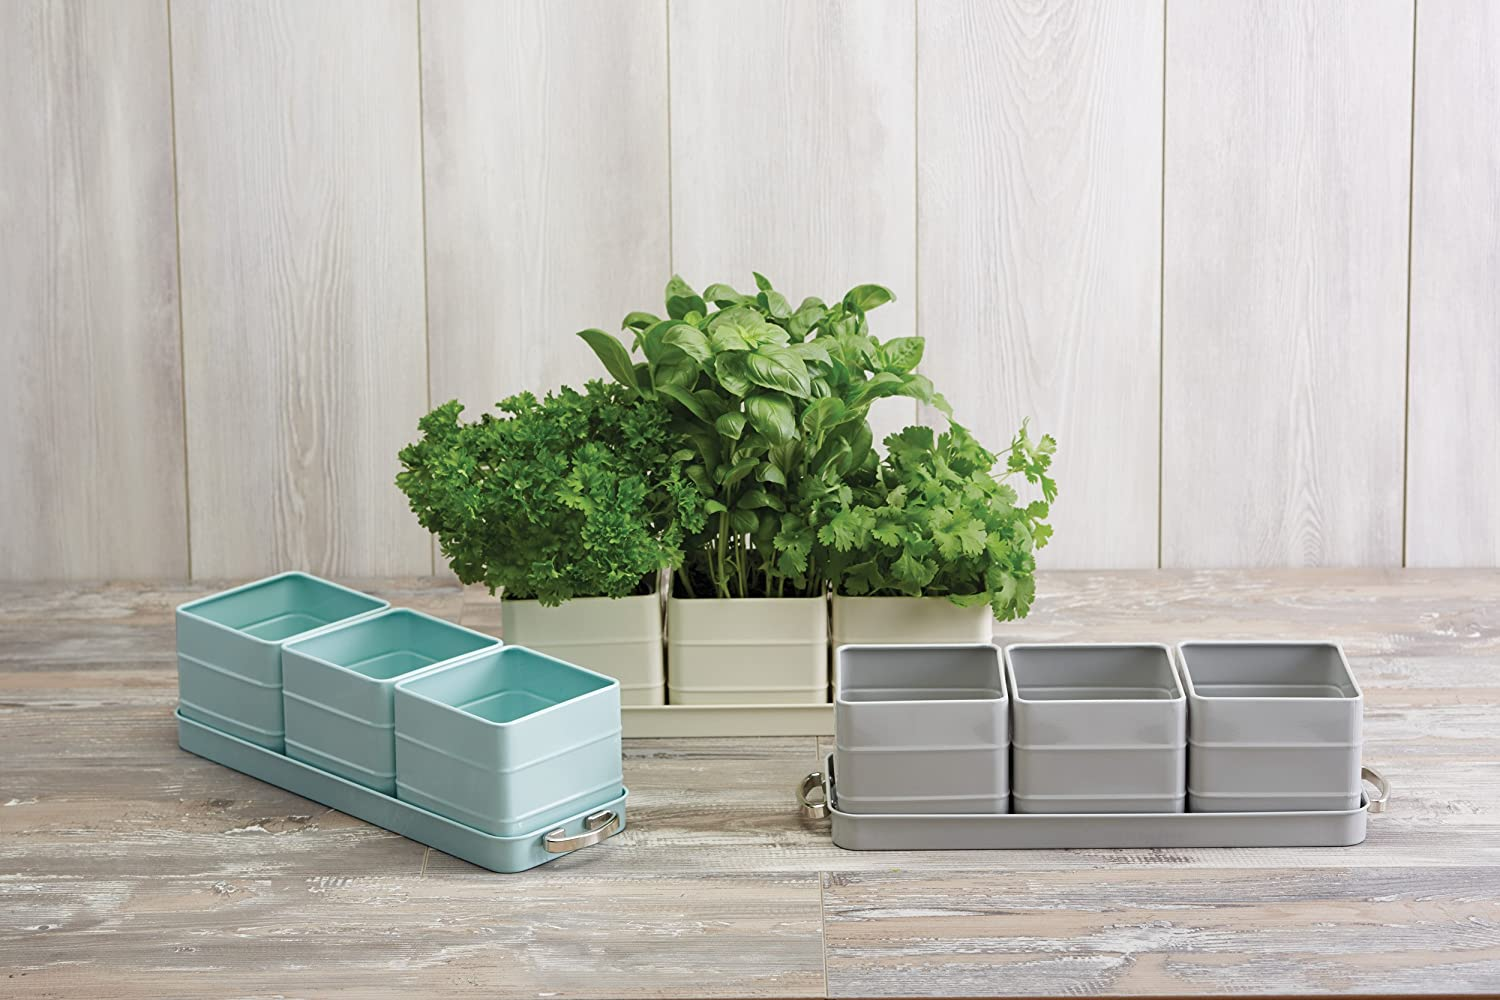 39 X 12 X 10 Cm Kitchen Craft Living Nostalgia Indoor Metal Herb Pots And Tray Set Antique Cream Patio Lawn Garden Window Boxes